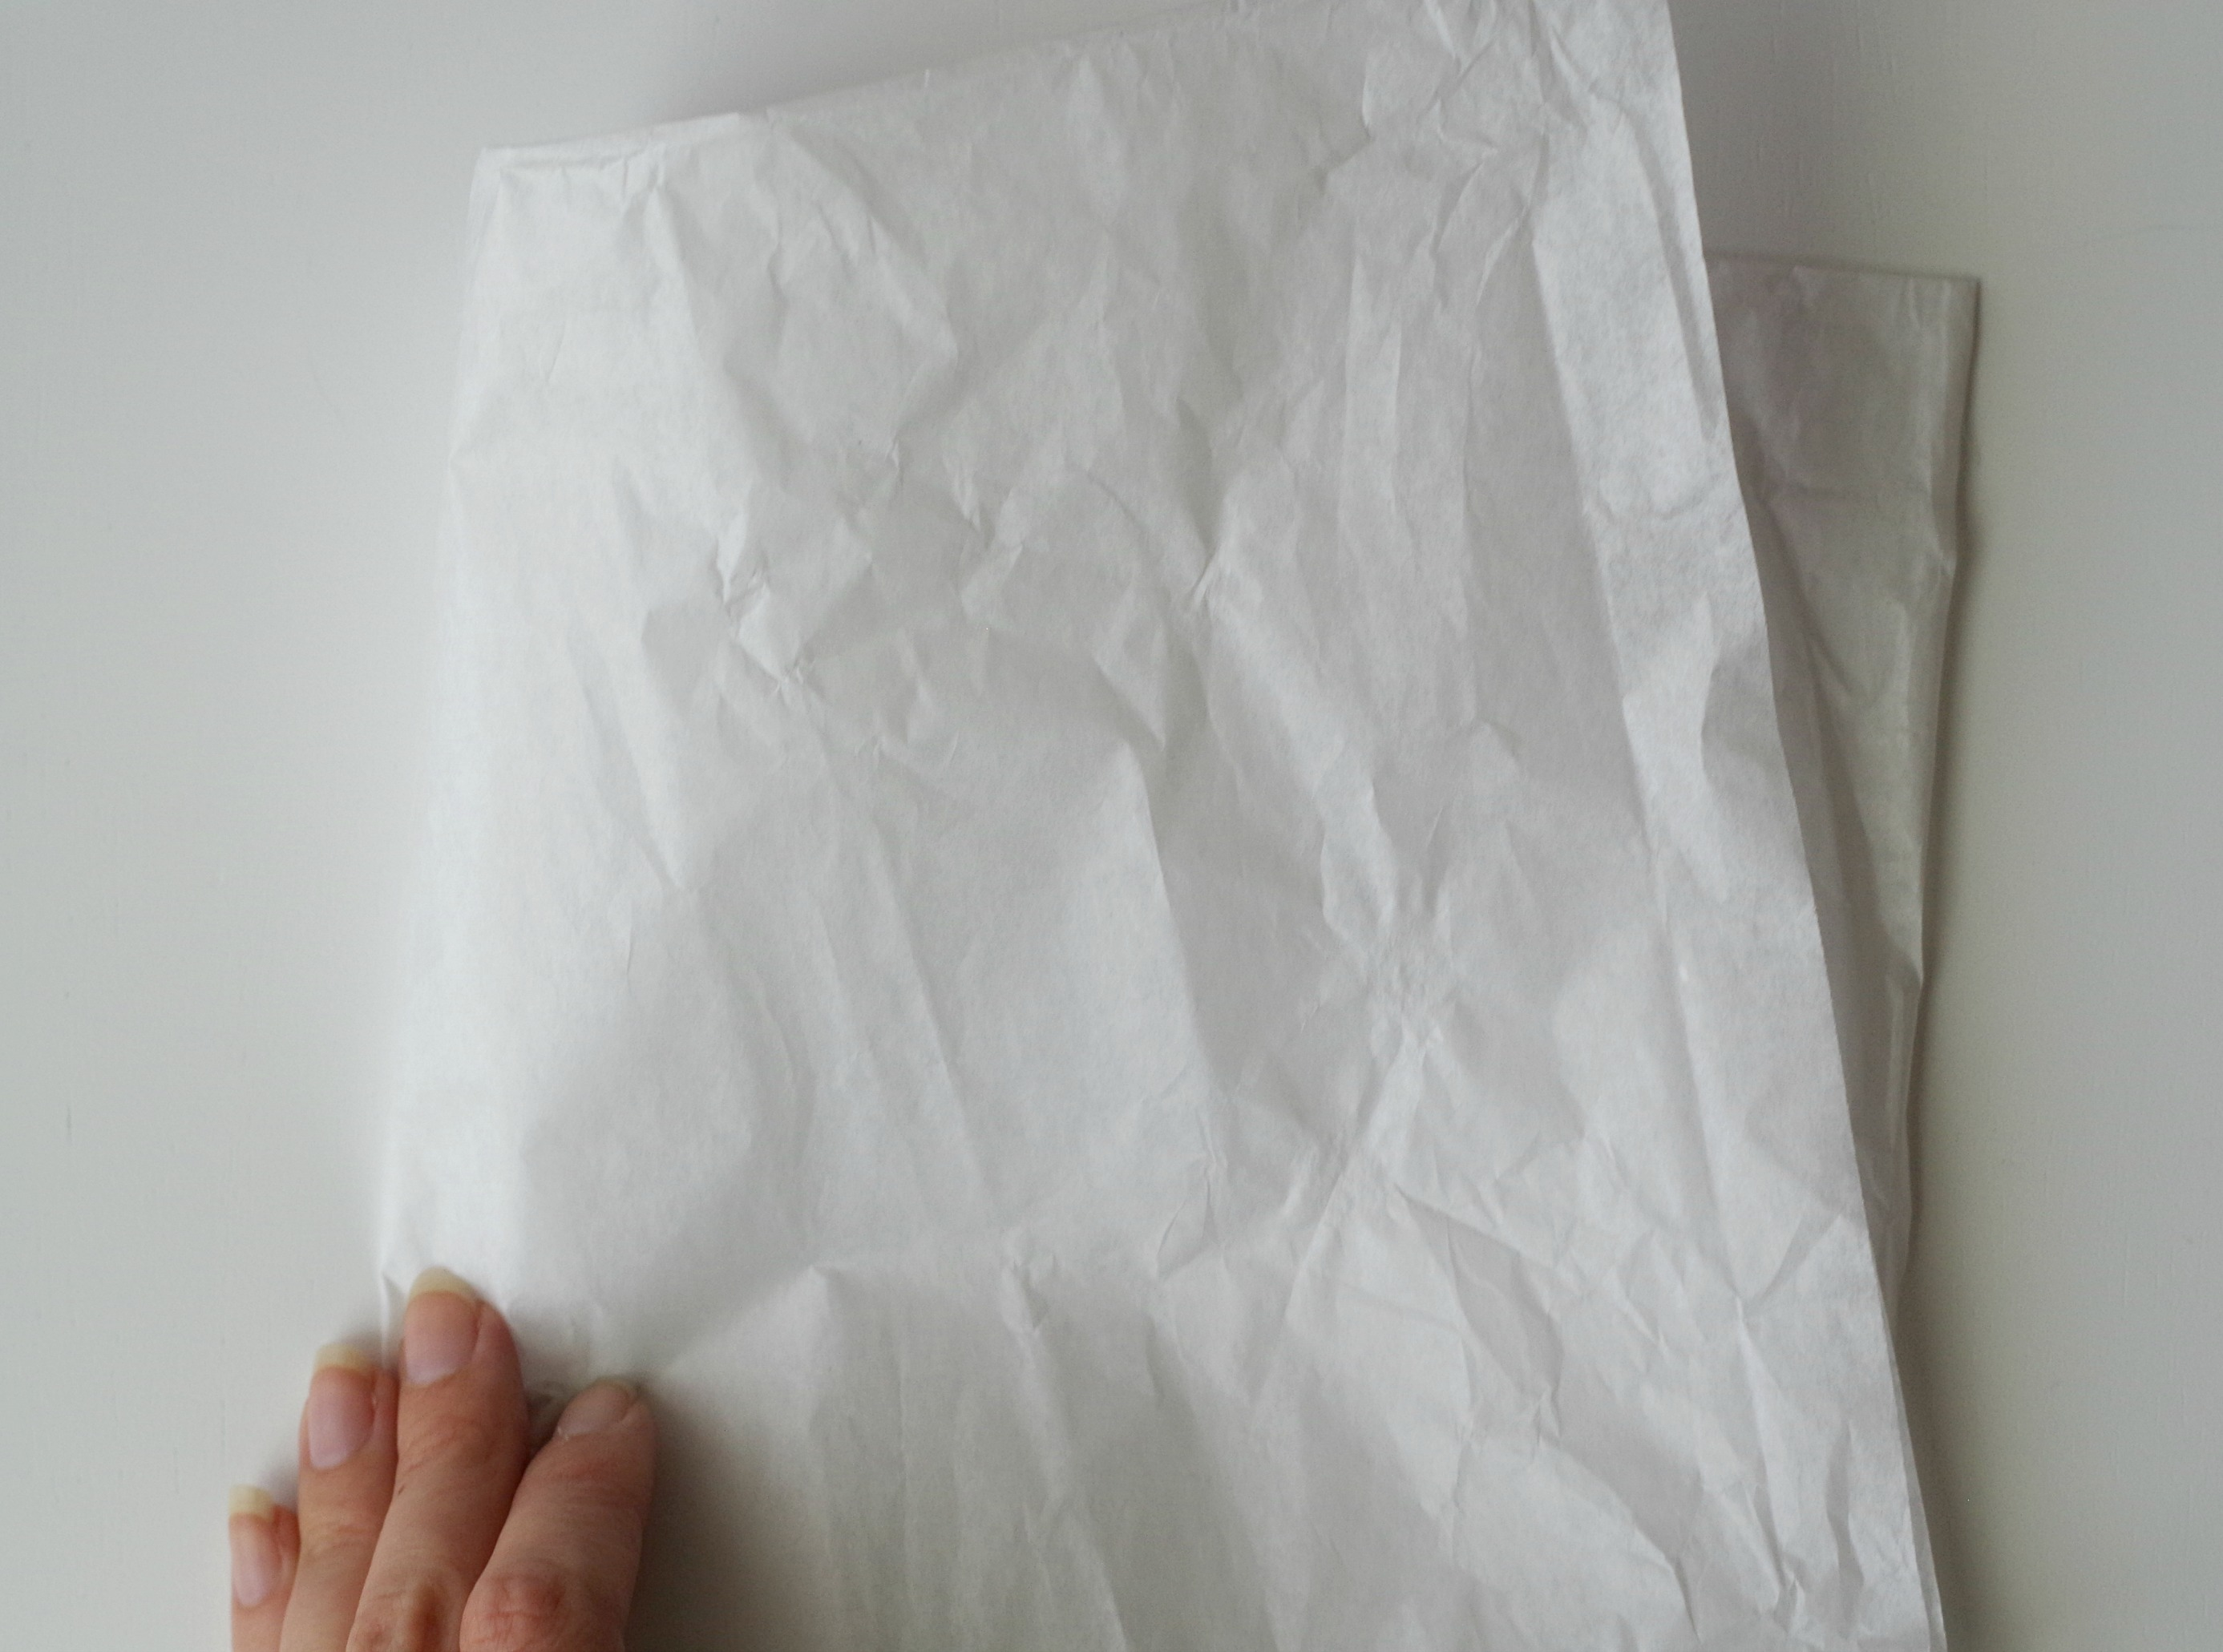 fold white tissue in 1/4 piece